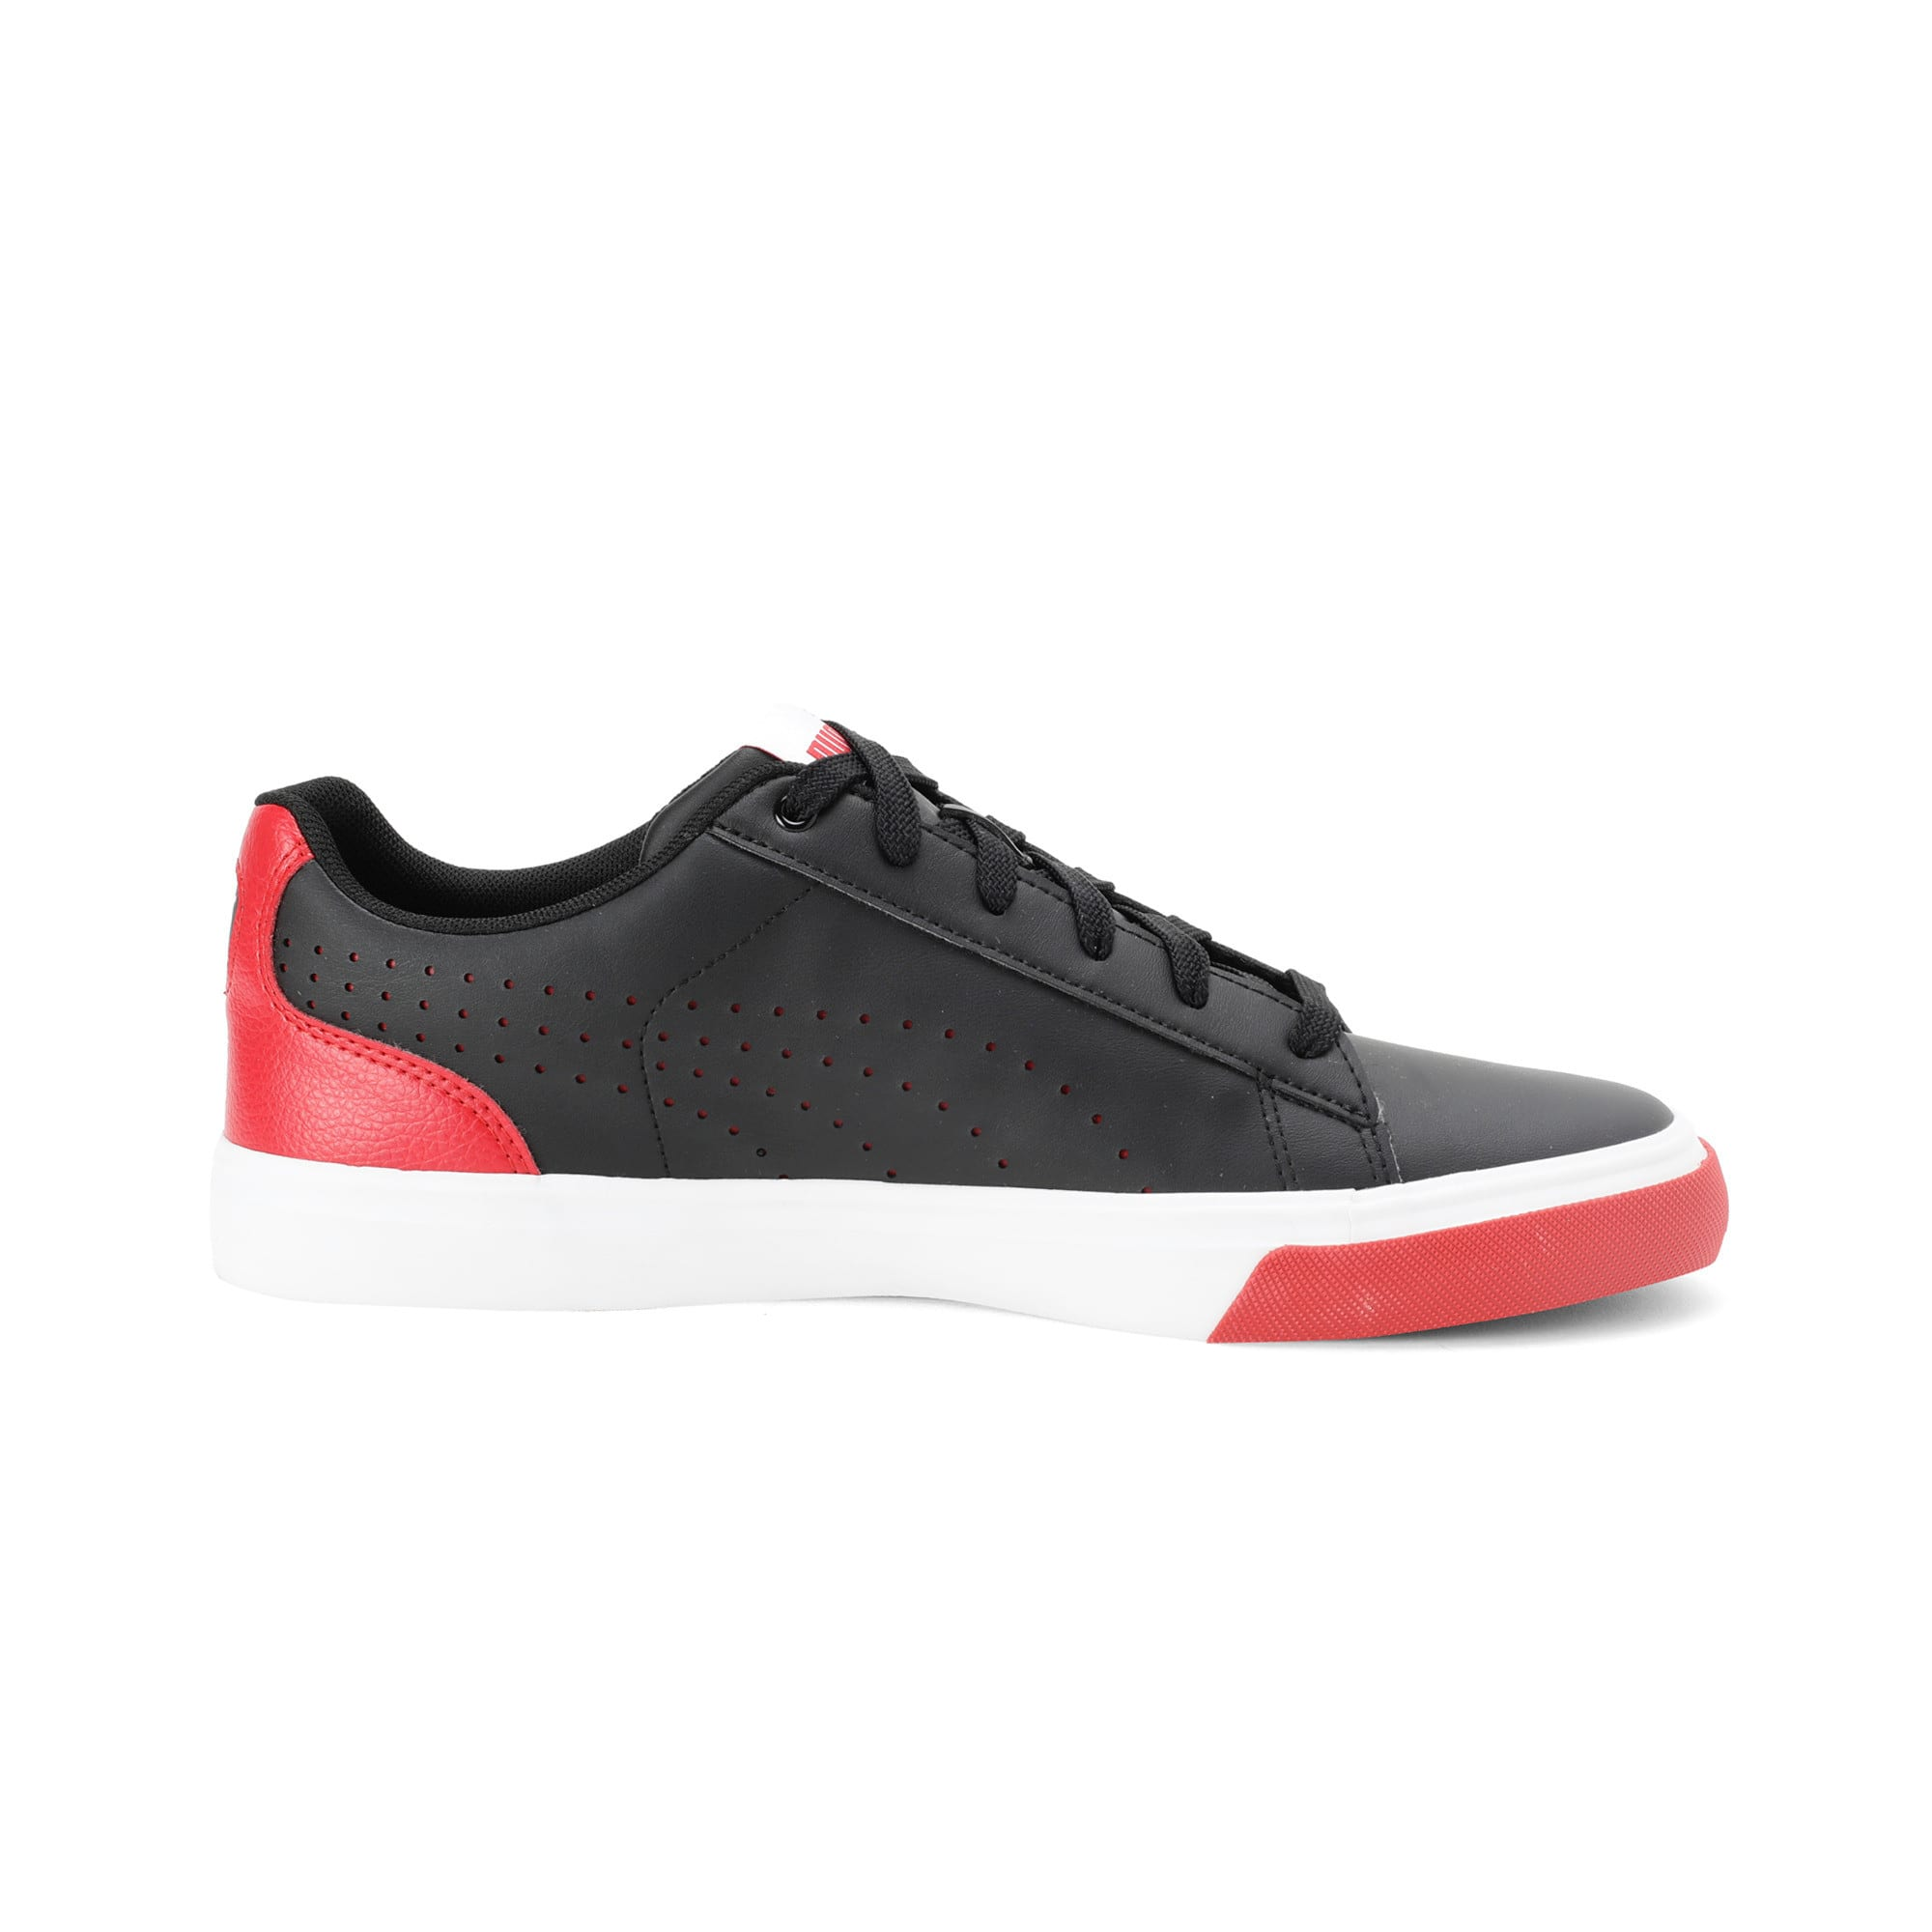 Thumbnail 5 of Flight X 2 IDP, Puma Black-High Risk Red, medium-IND